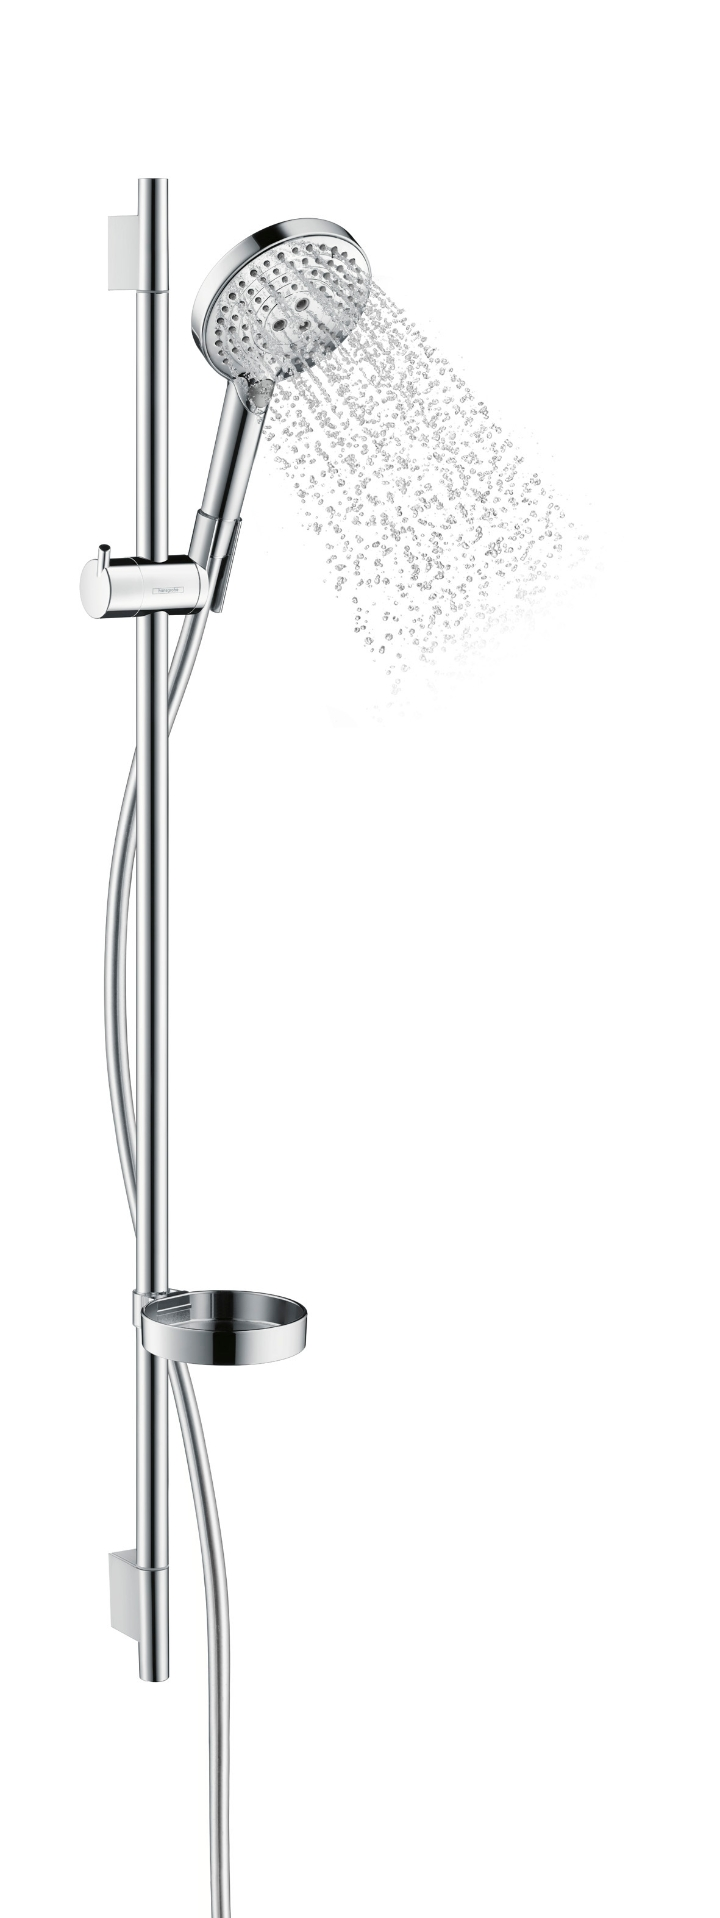 Hansgrohe douche RaindanceSelect S120 de Hansgrohe tringle de douche